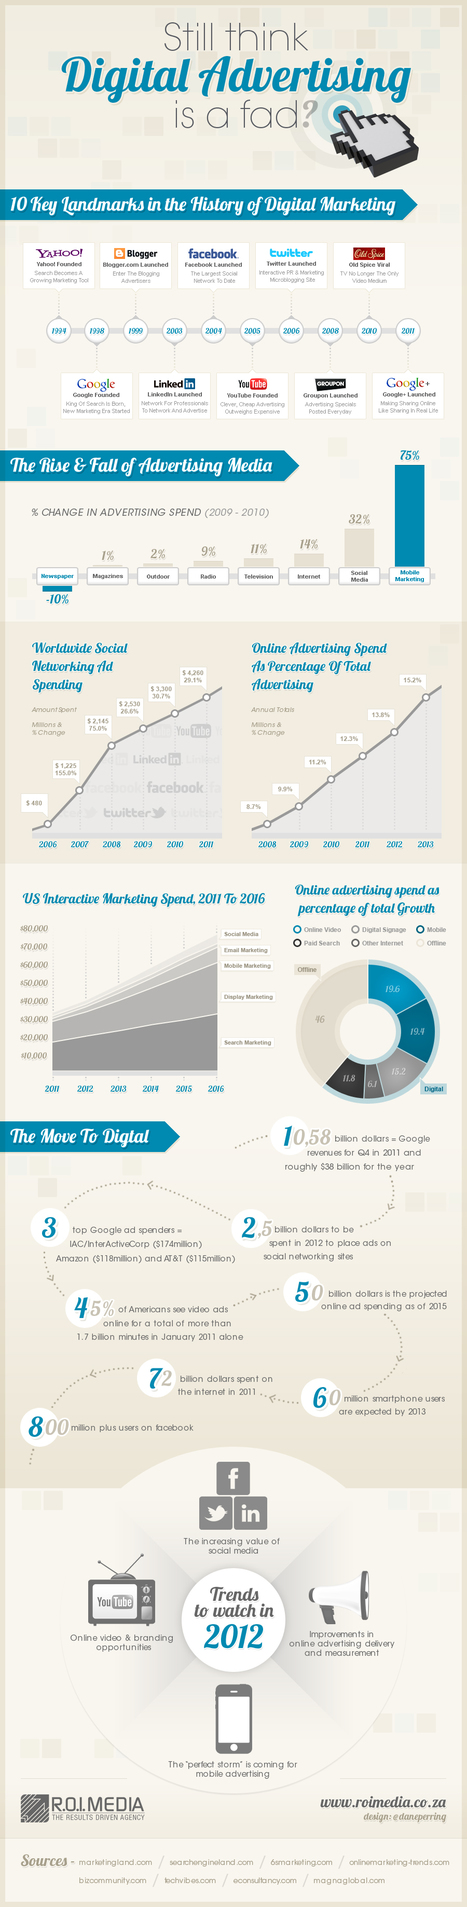 Still Think Digital Advertising Is A Fad?  Infographic | Ecom Revolution | Scoop.it